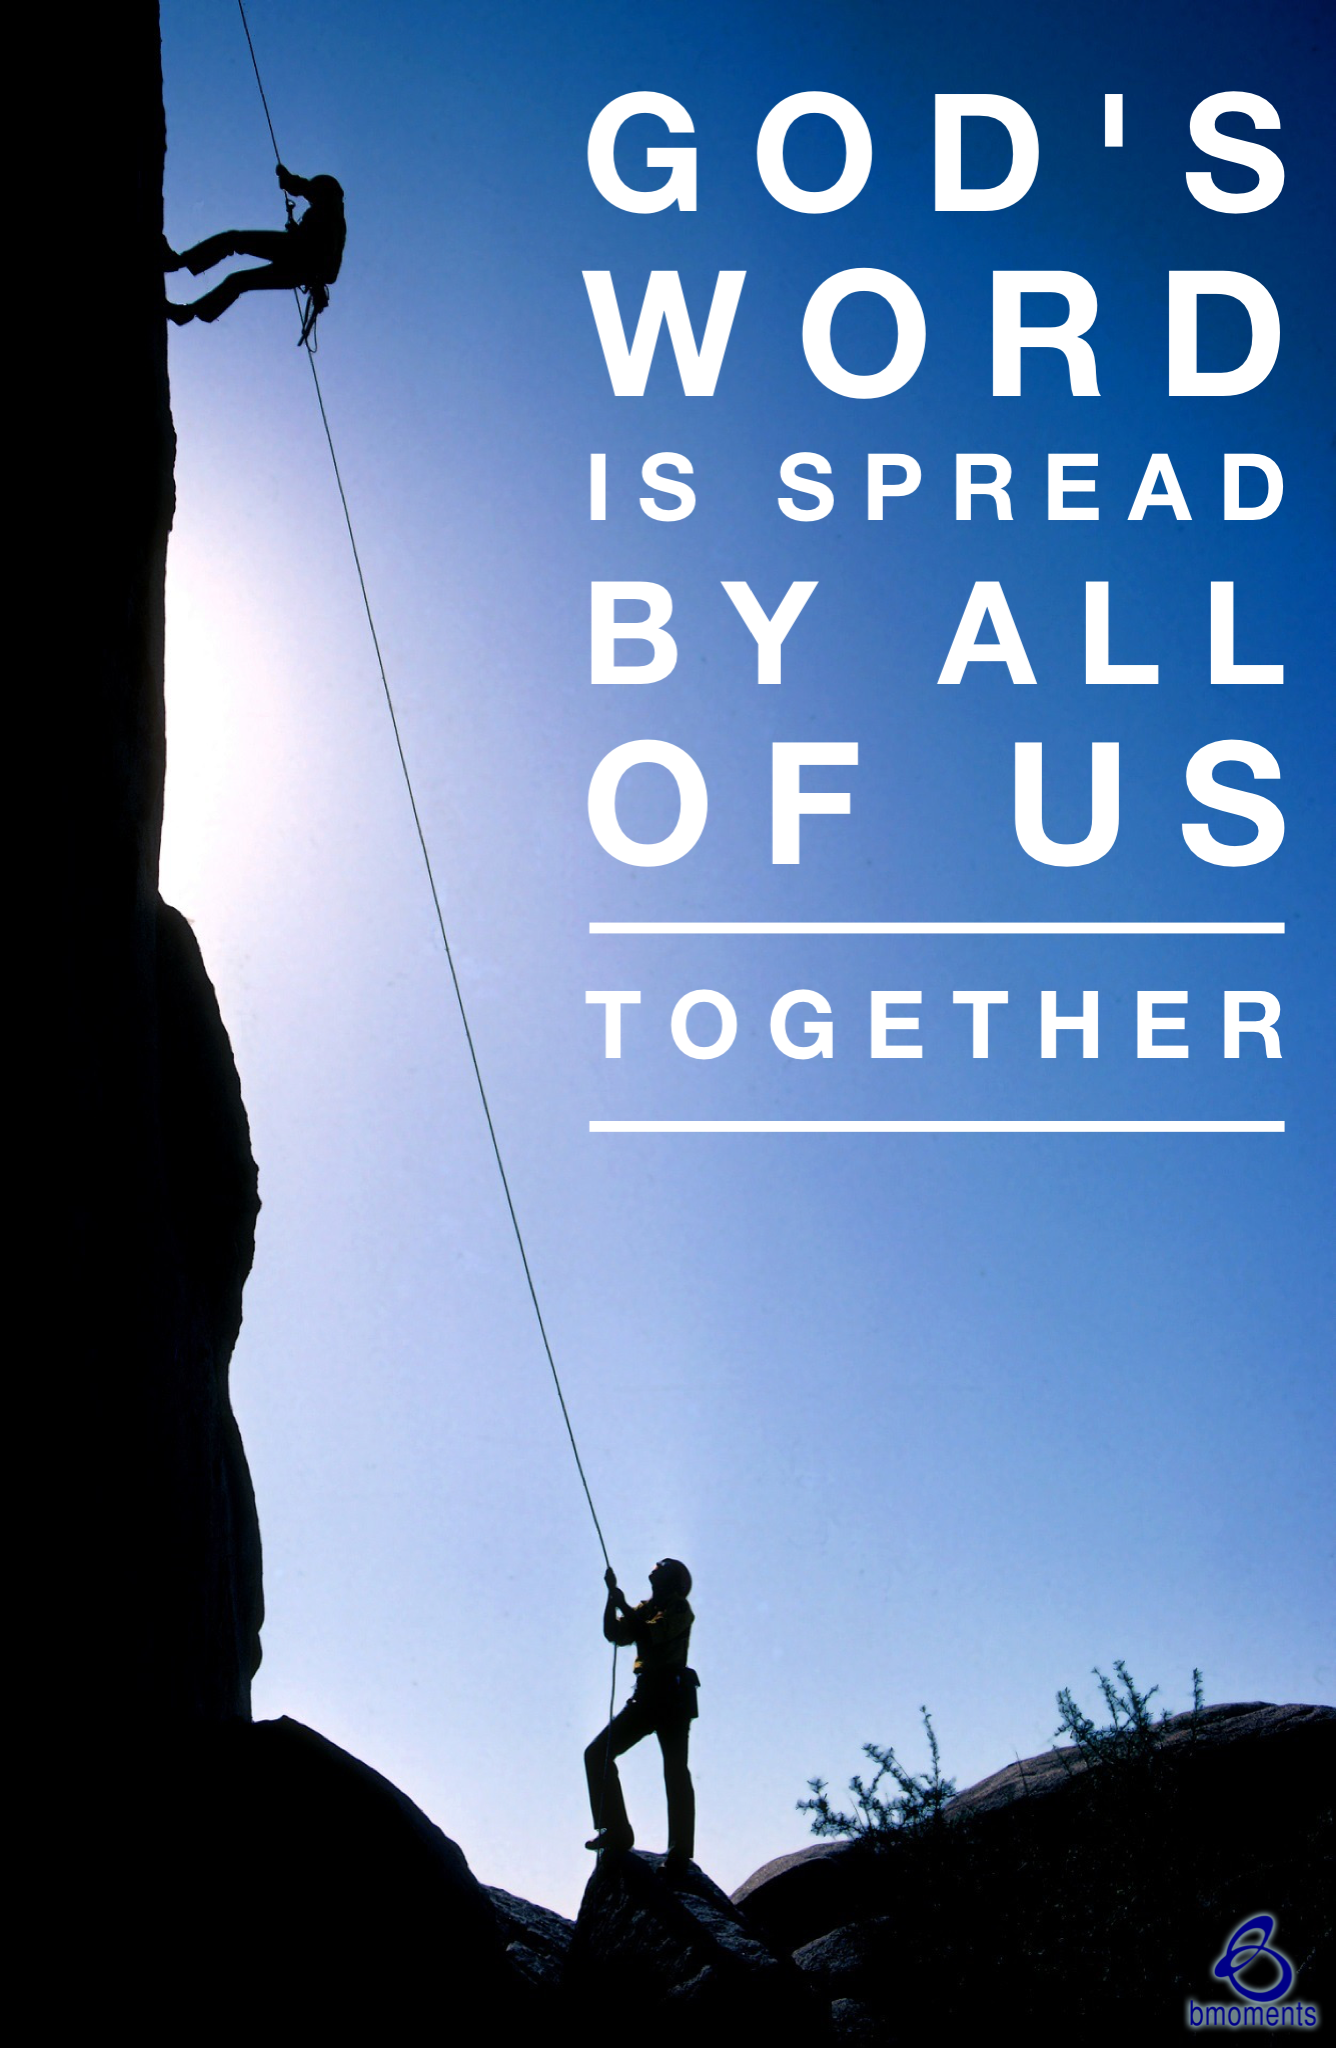 Together, We Can Spread God's Word